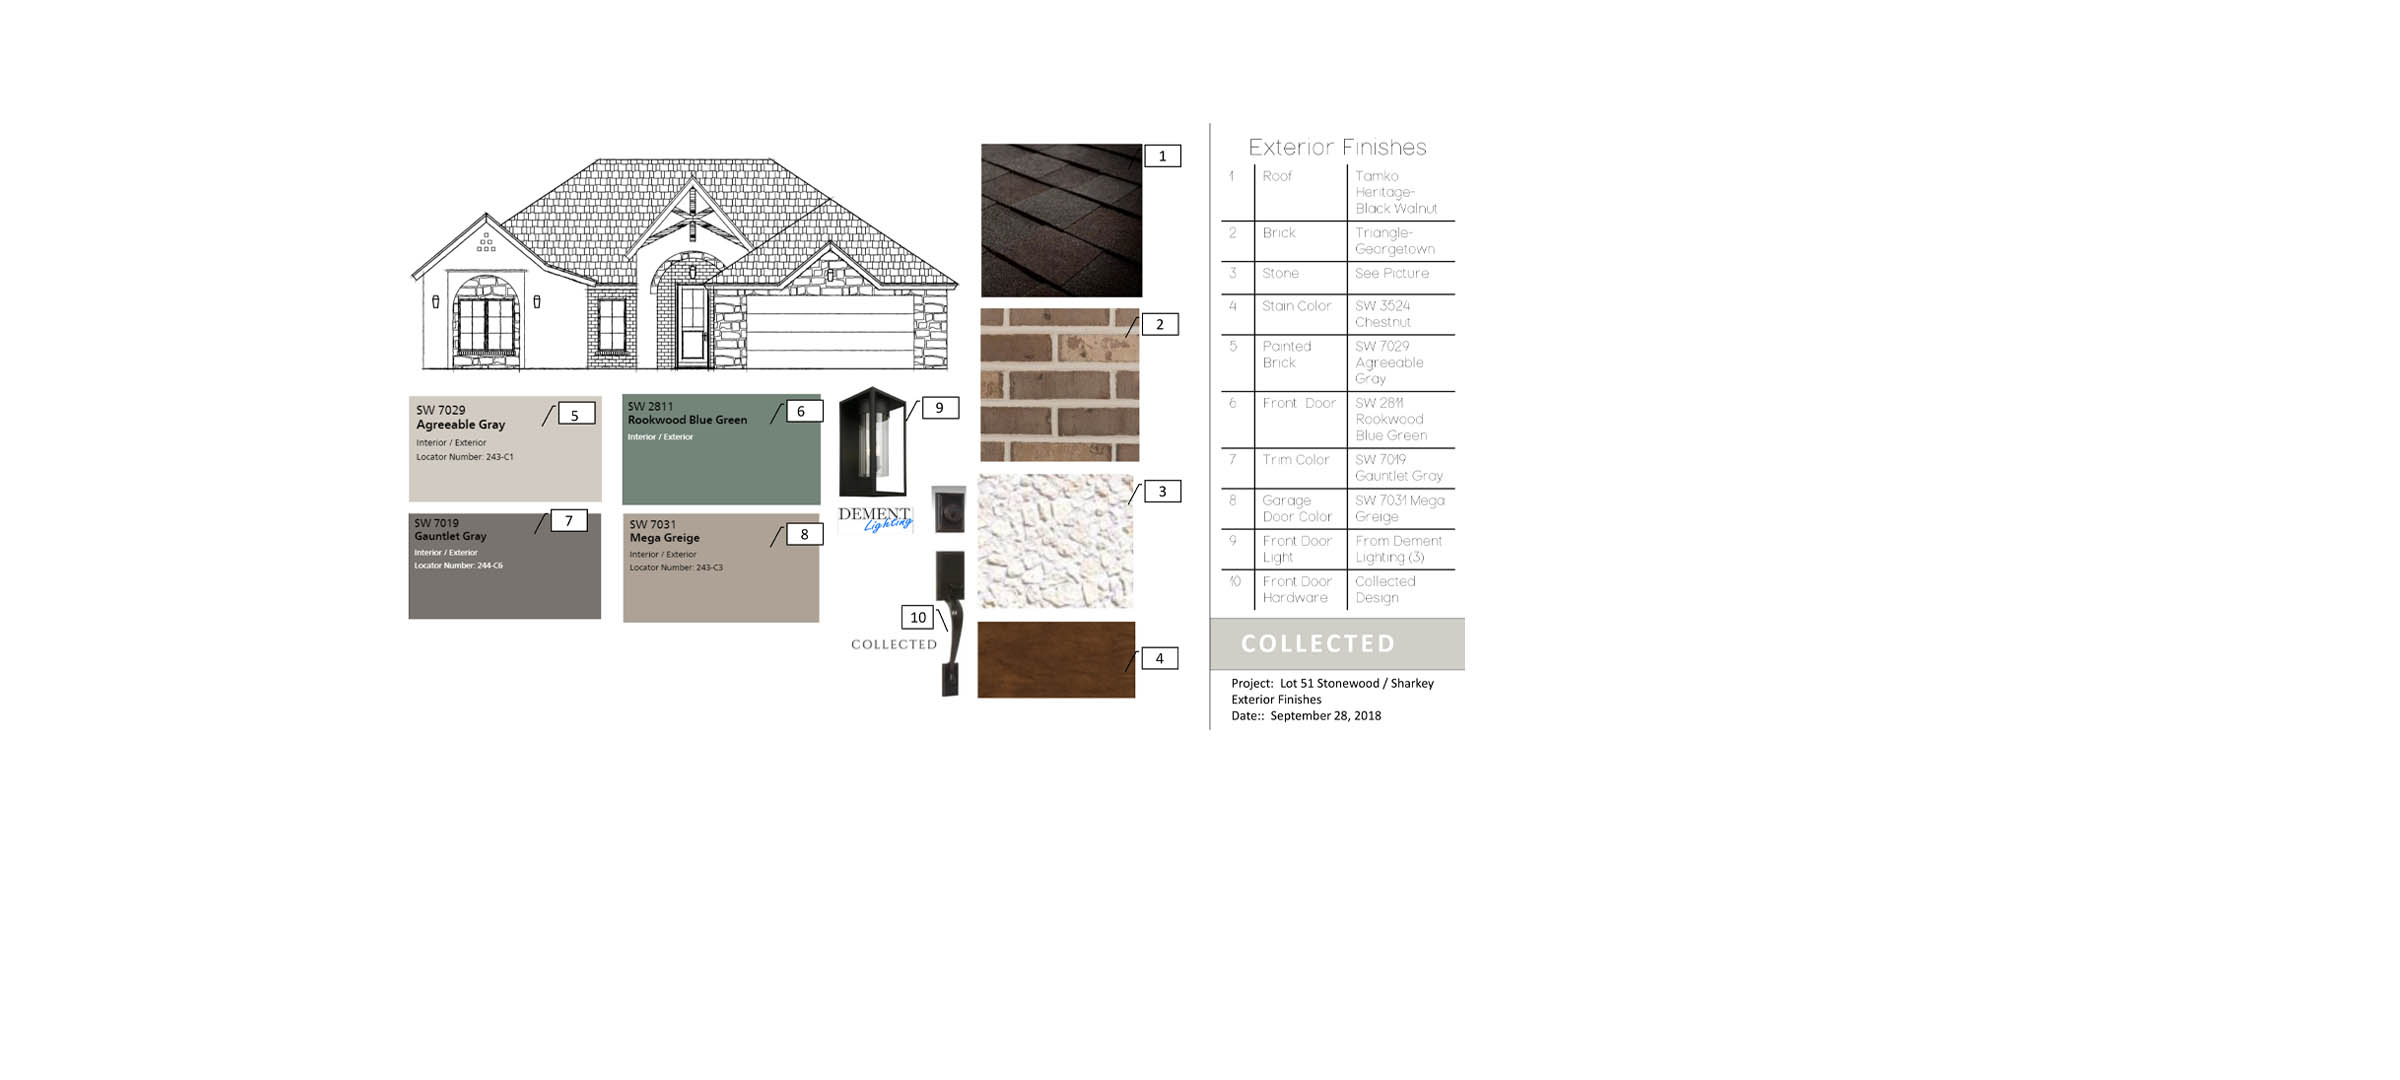 Exterior finishes of new home in Lubbock, Texas, by Sharkey Custom Homes.